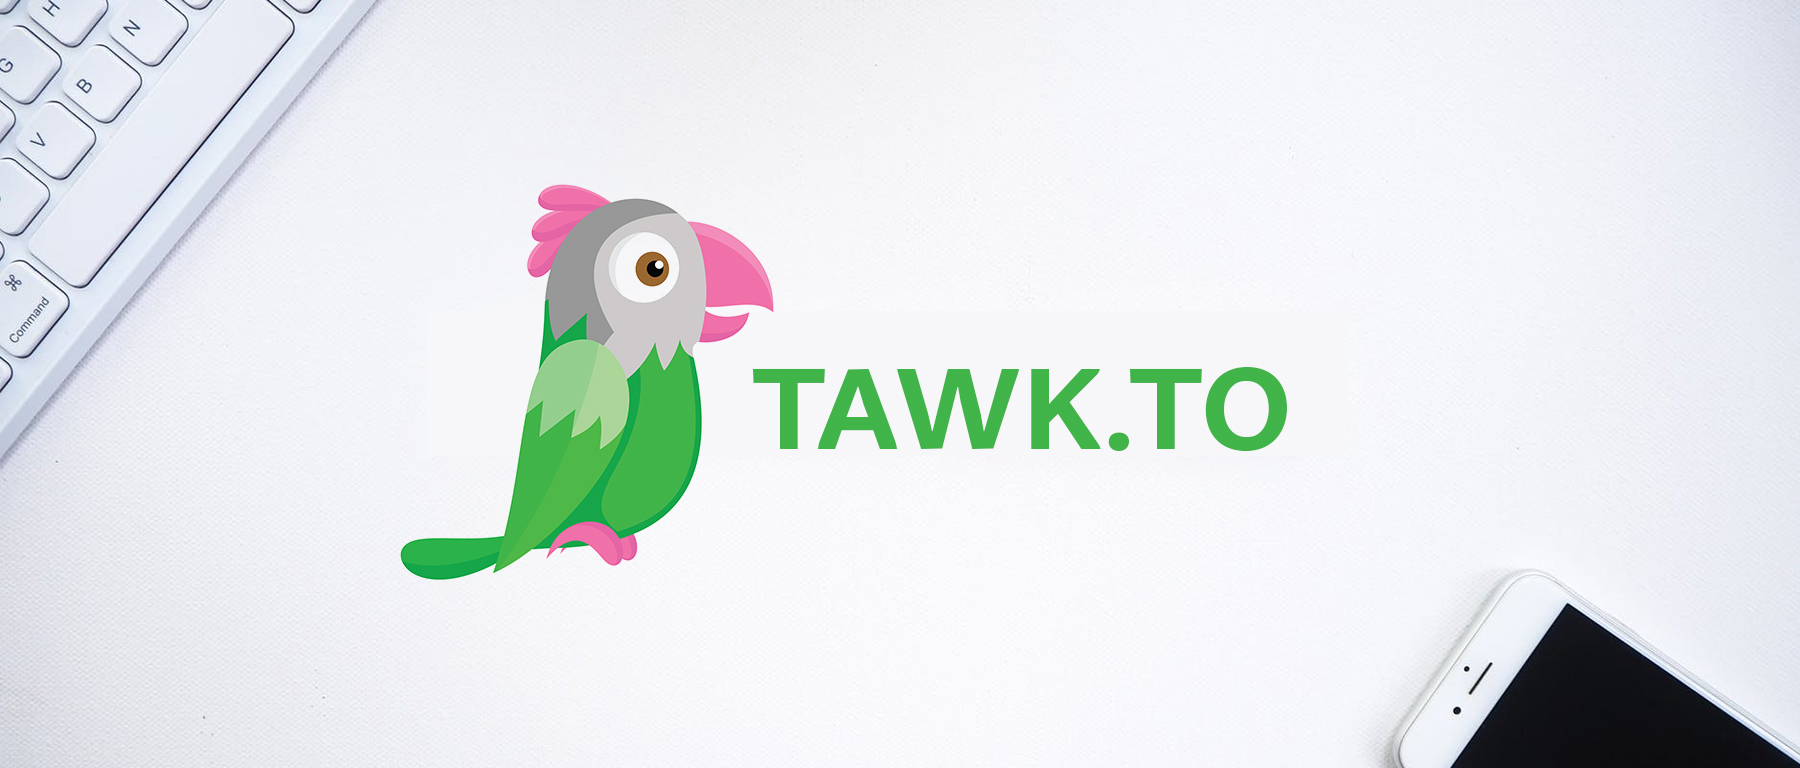 Affiliates Can Quickly Contact MaxBounty AMs via Tawk.to